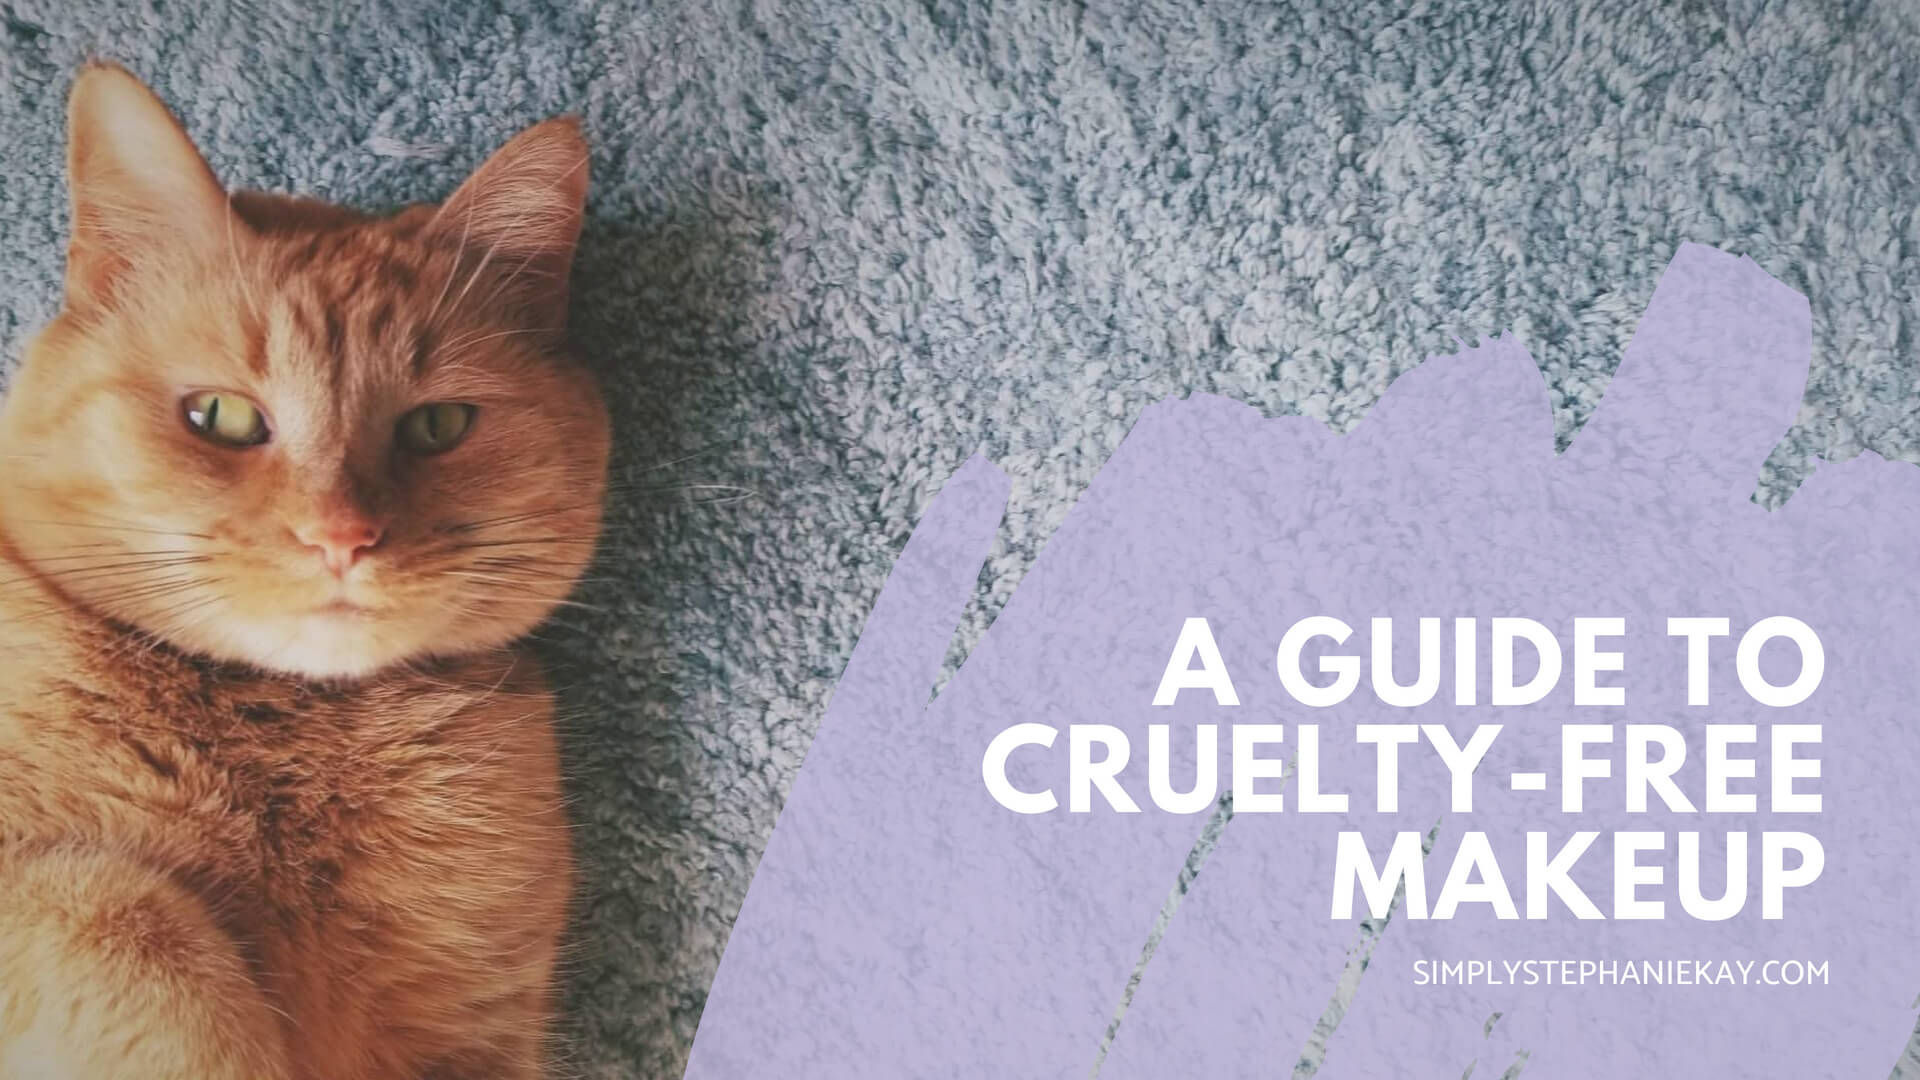 a beginner's guide to cruelty-free makeup and skincare